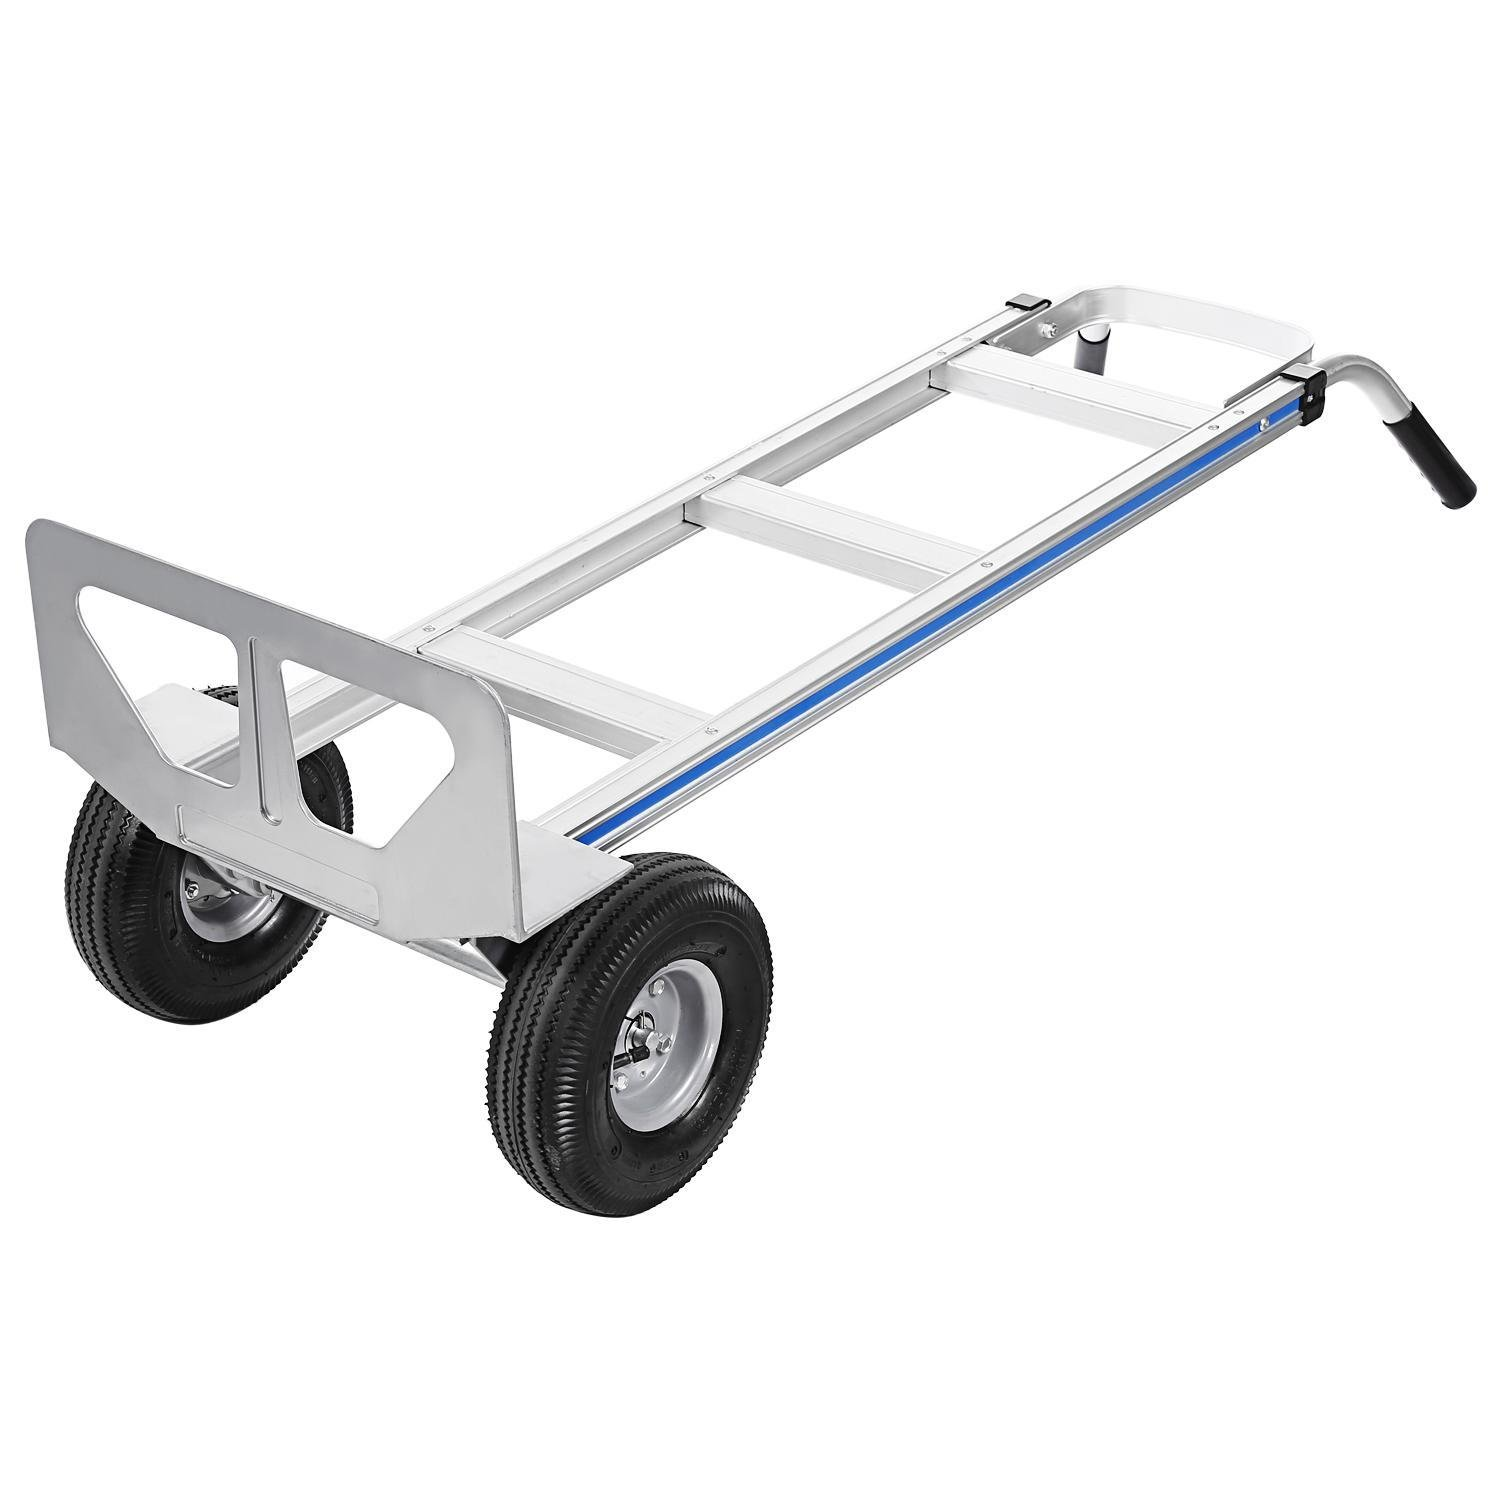 Ferty Aluminum Hand Trucks 500LBS With 2 Pneumatic Tires Dolly, Double Pistol Grip Handle Heavy Duty Trolley/Cart With 2 Wrench by Ferty (Image #2)